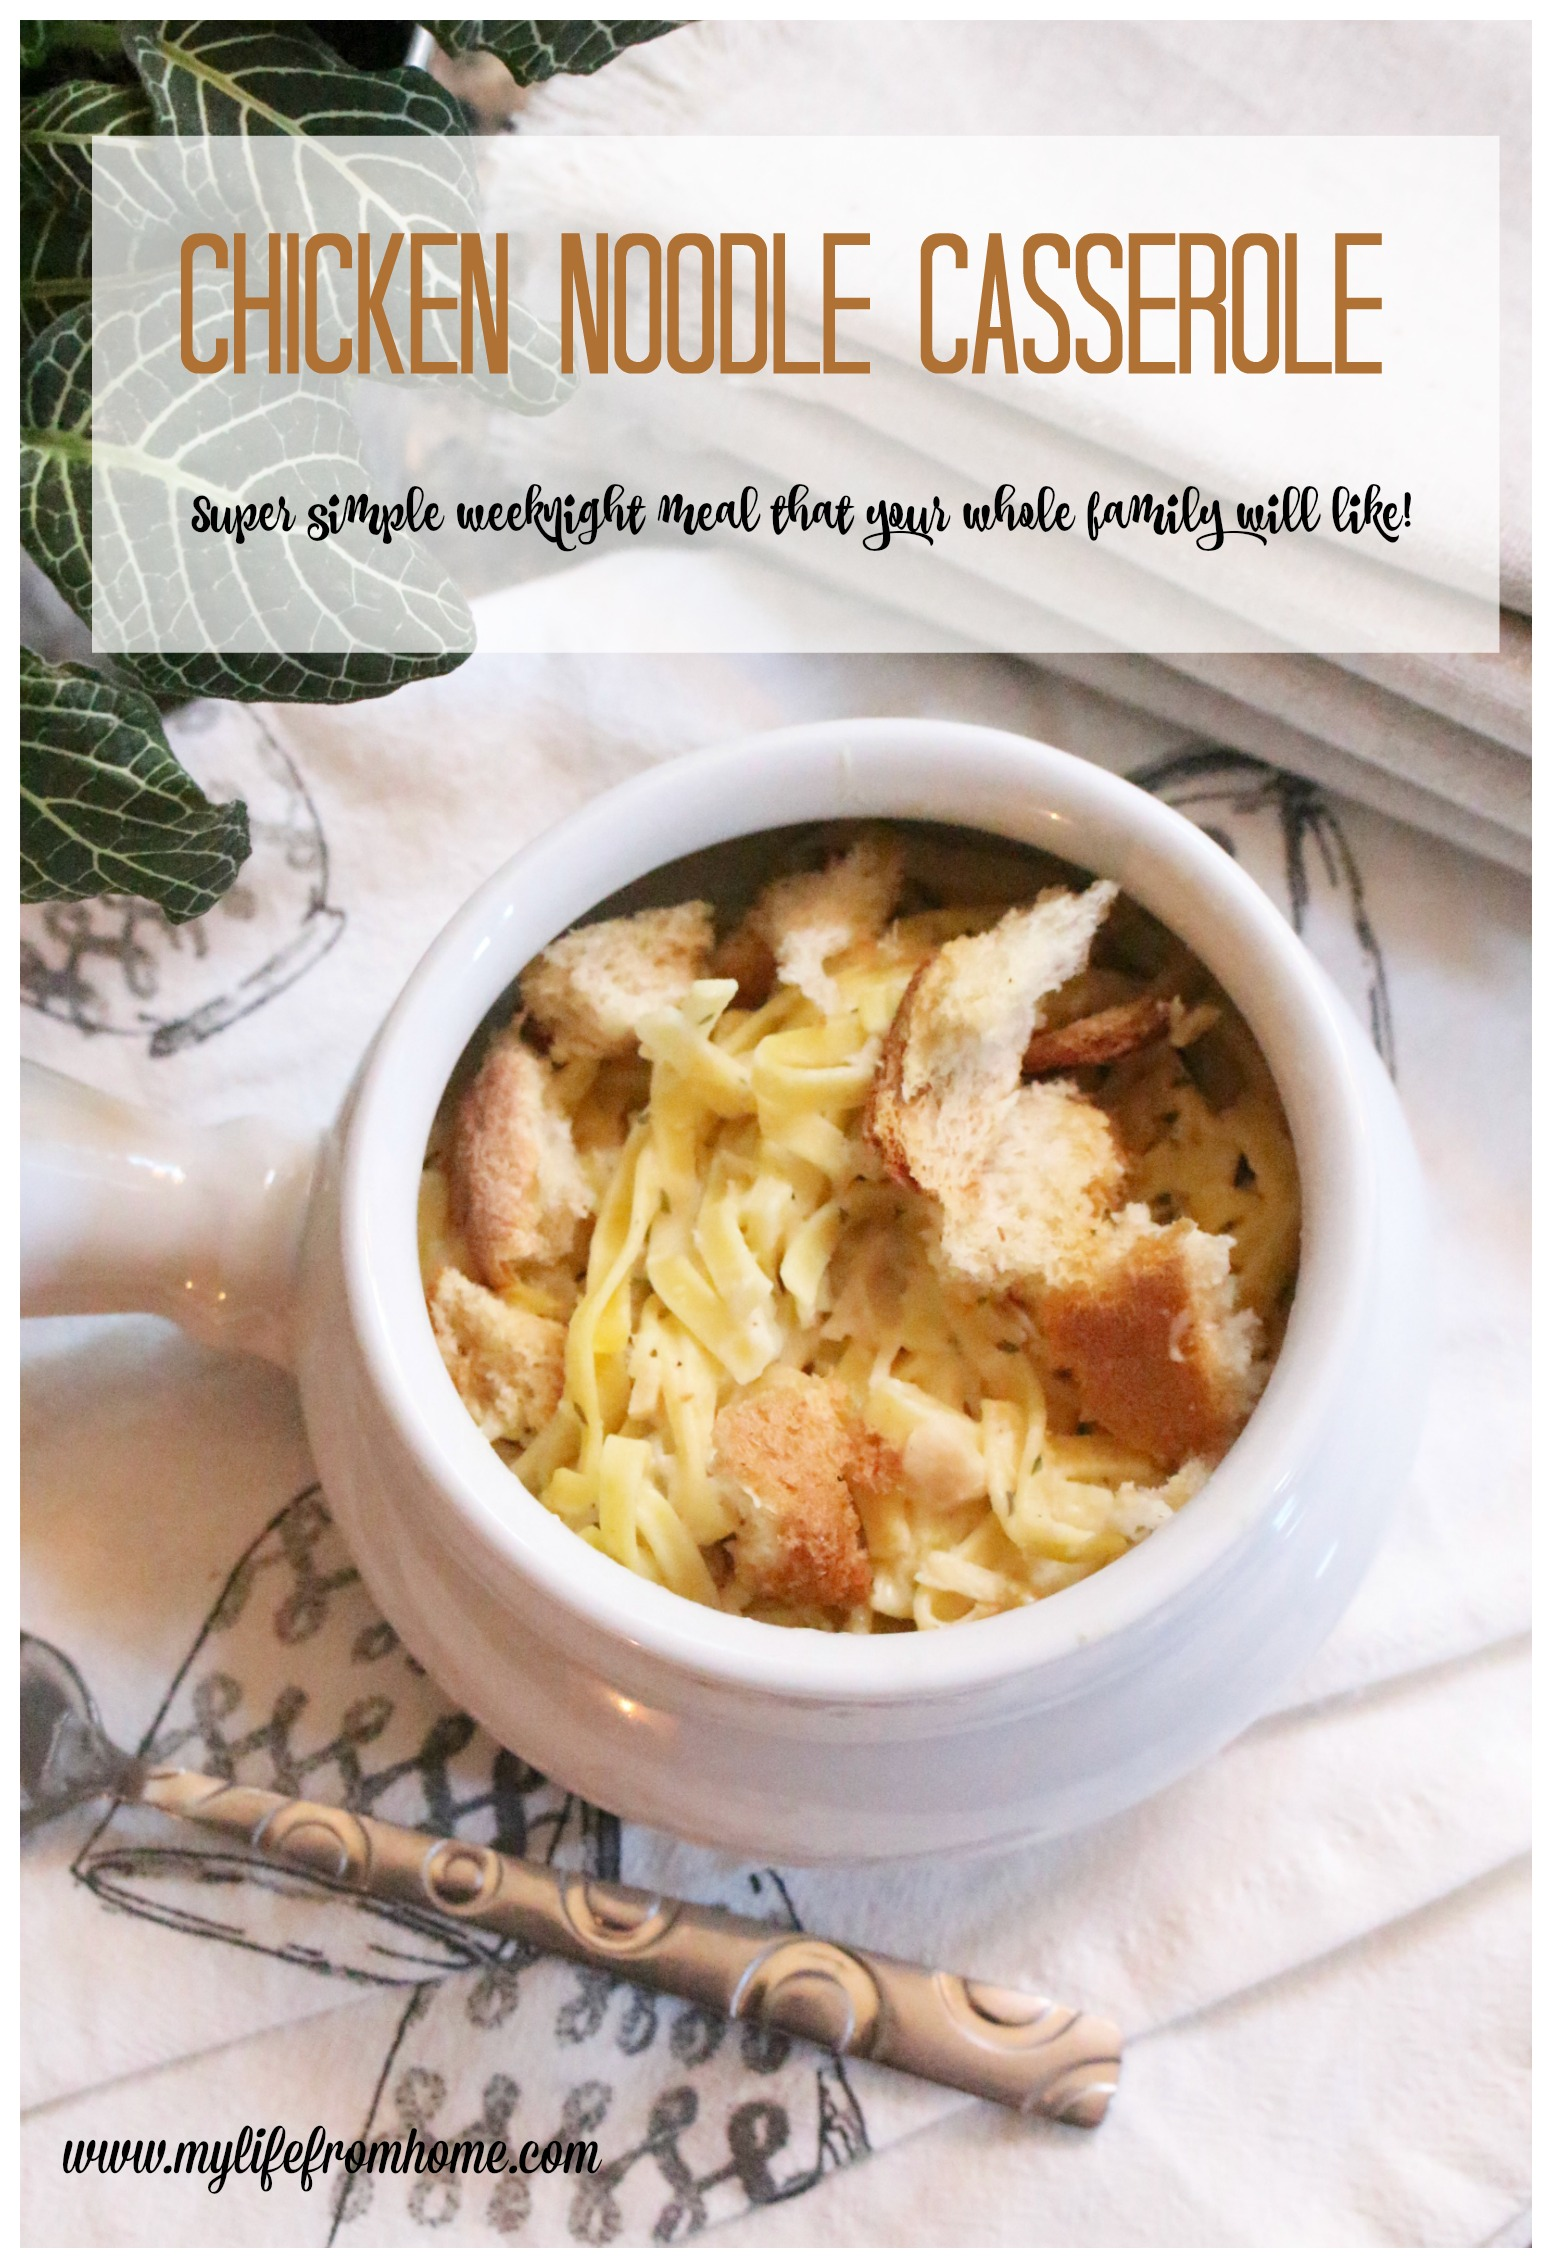 recipe-for-chicken-noodle-casserole-recipes-weeknight-dinners-chicken-entrees-casseroles-kid-friendly-meals-simple-and-easy-meals